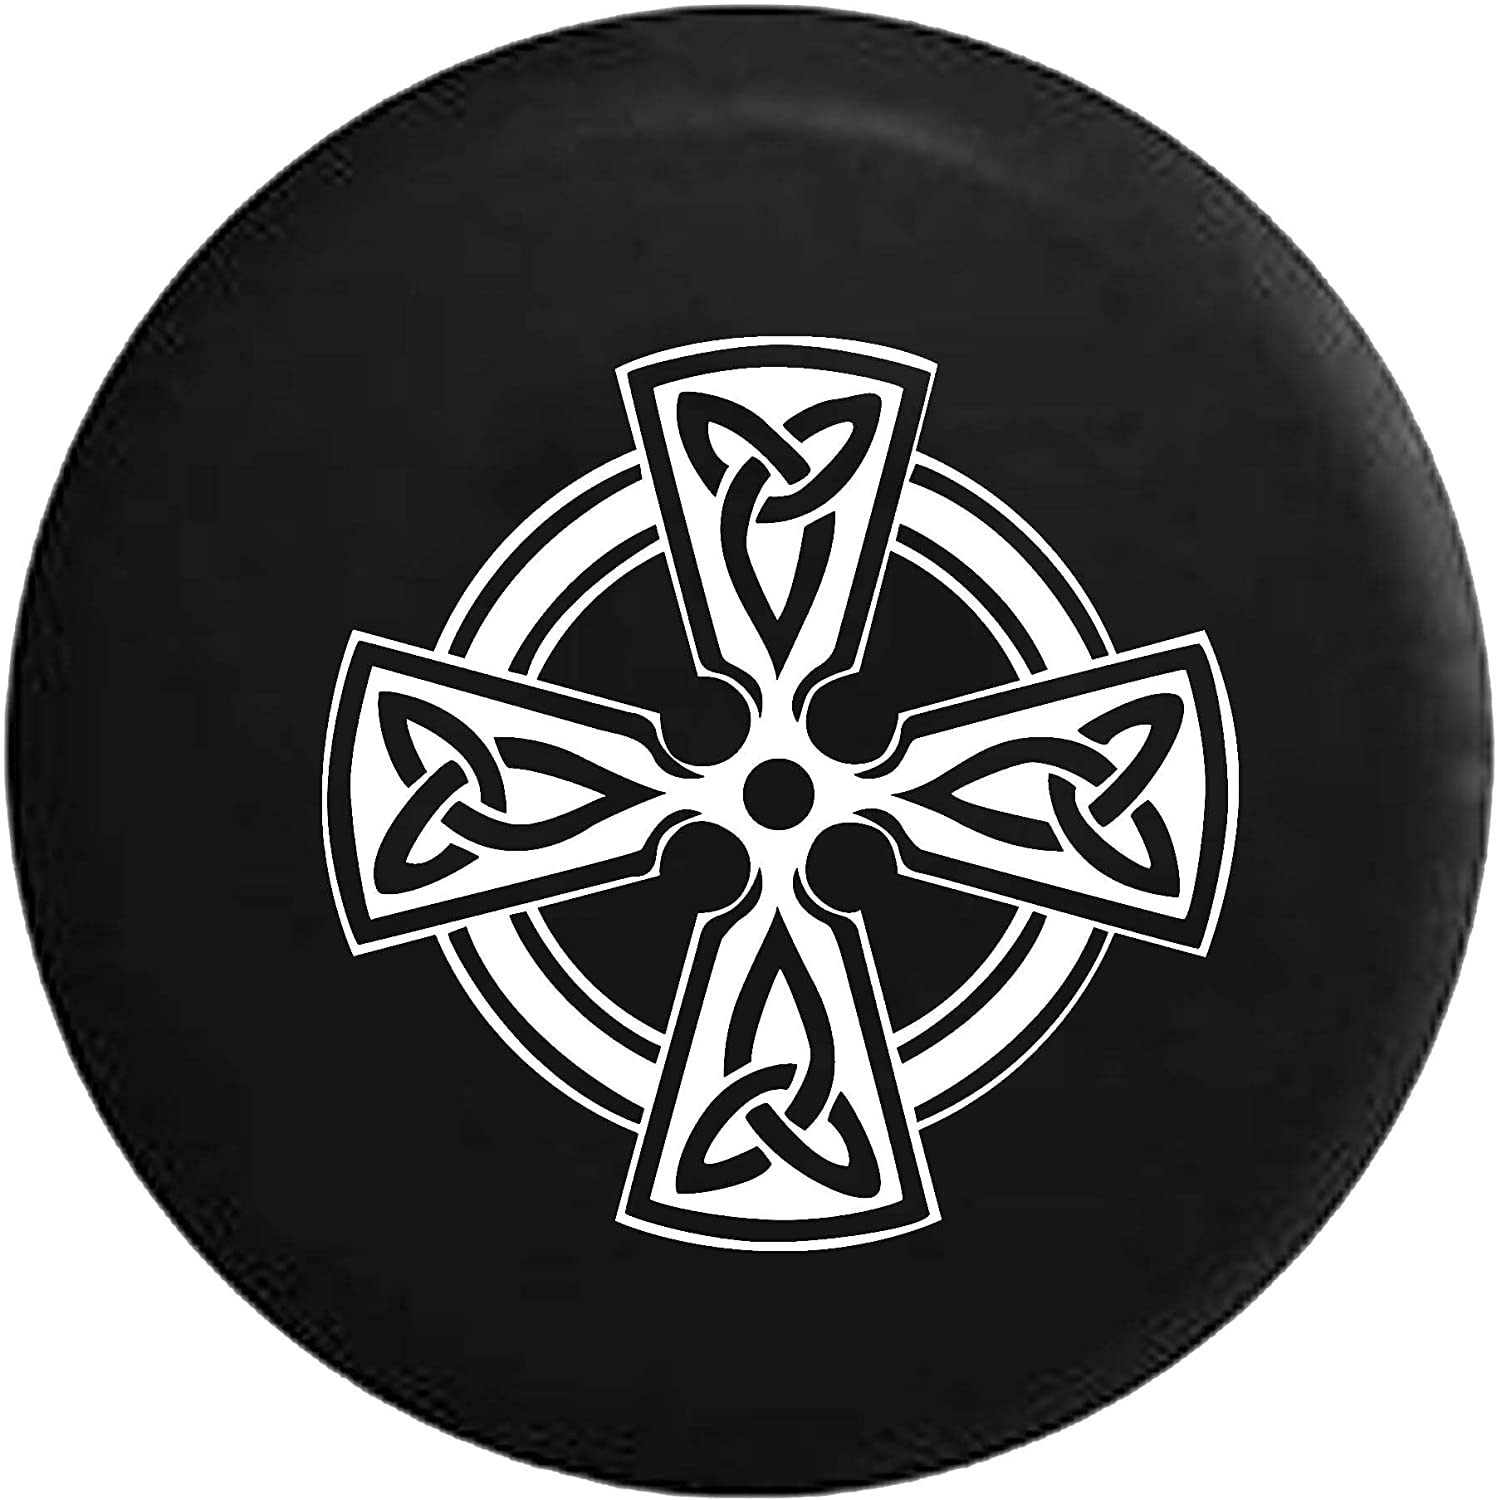 Patricks Day Irish American Flag Tire Covers Car SUV Camper Travel Trailer Spare Tire Wheel Covers BAG9S-G St